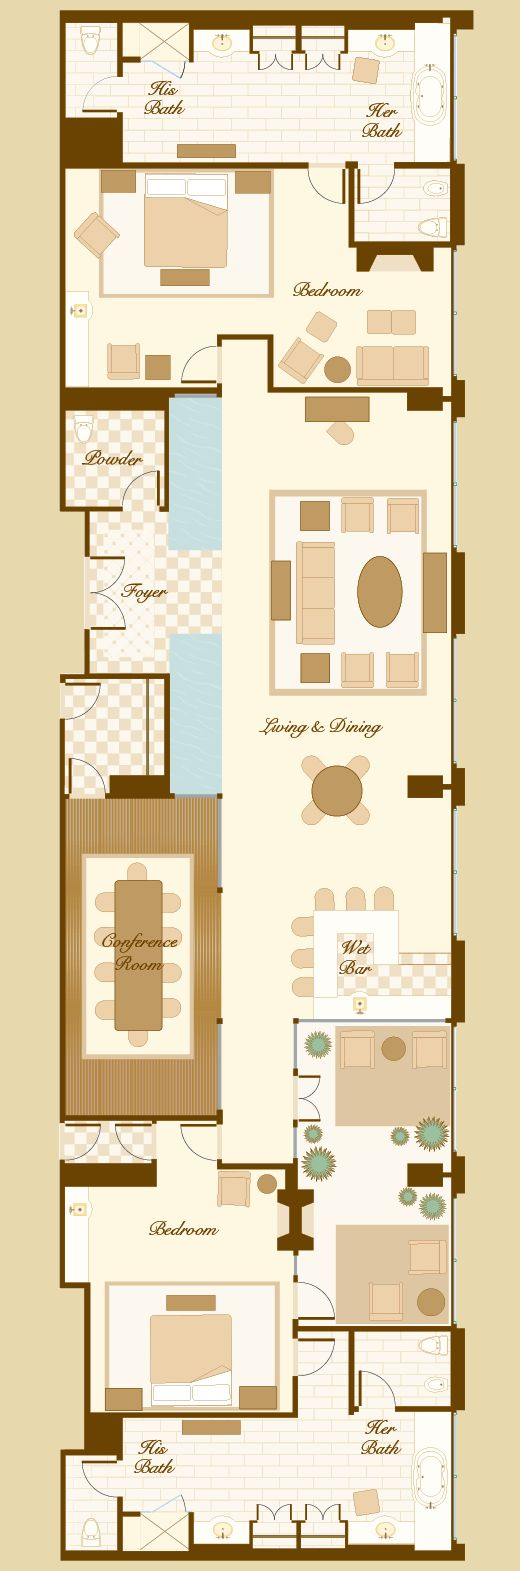 25 best hotel plan images on pinterest architecture apartment chairman suite at the bellagio hotel las vegas floorplans i class